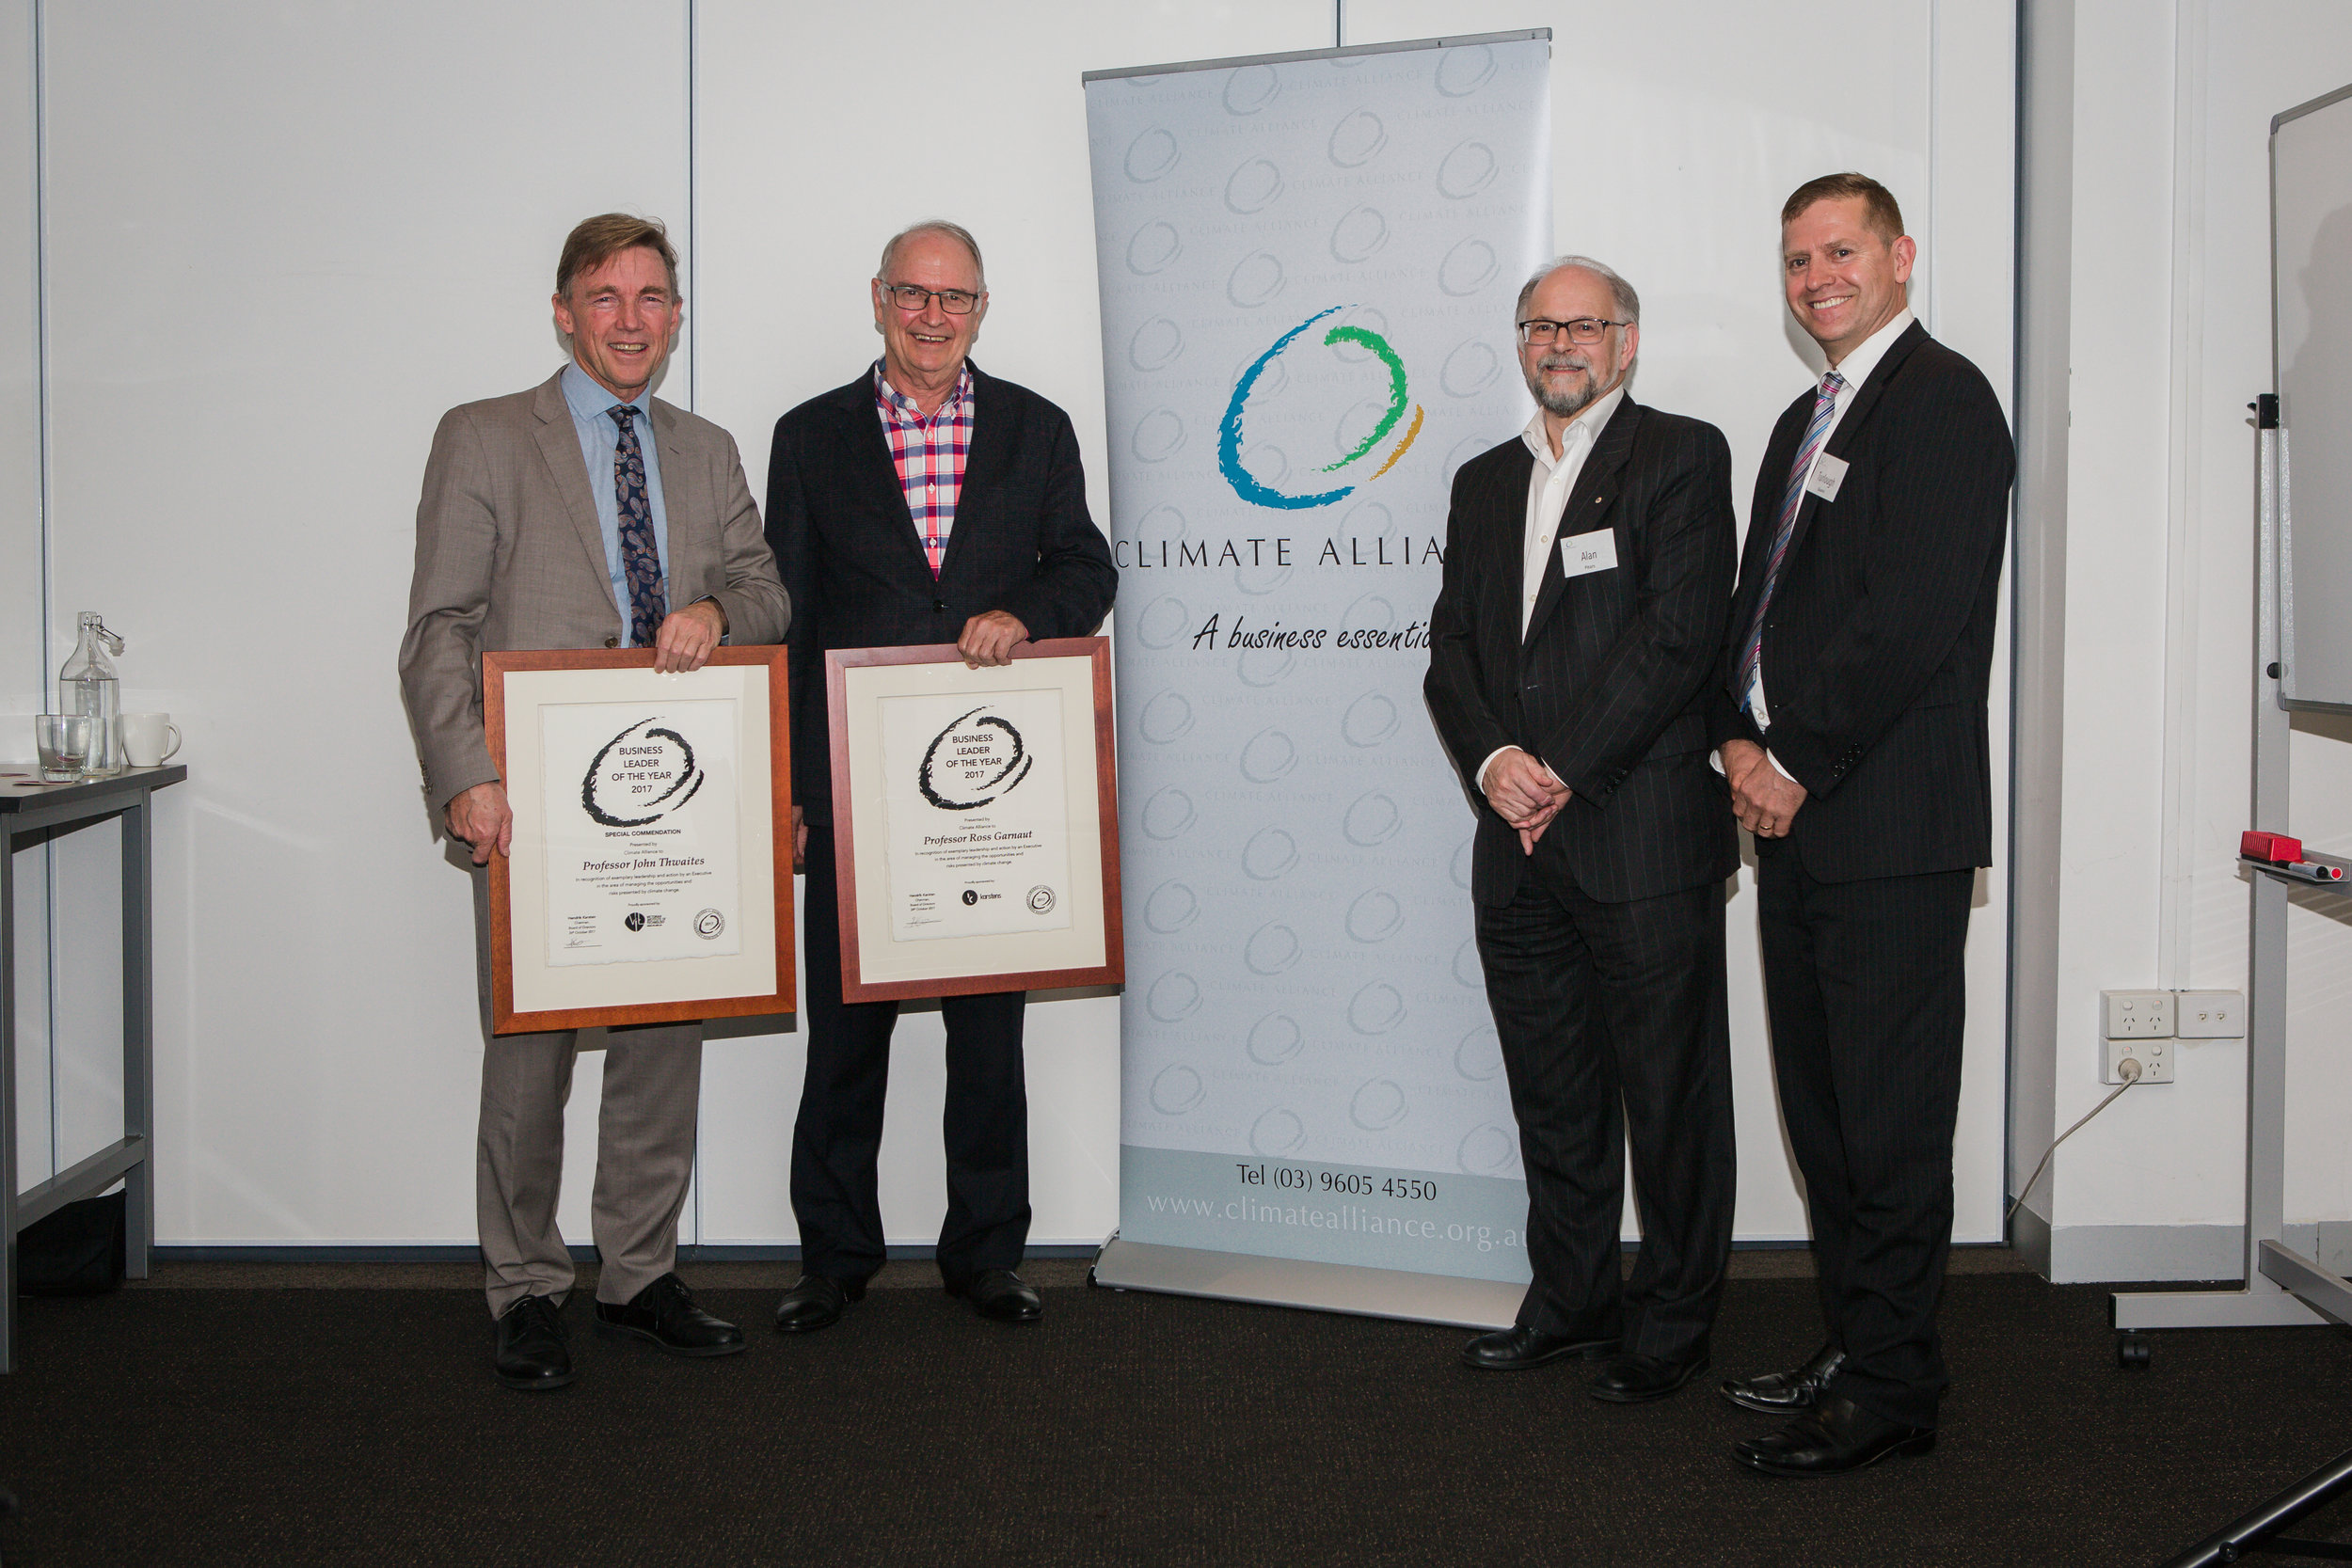 2017 Business Leaders of the Year, Professor John Thwaites, Professor Ross Garnaut with Alan Pears and Dr Turlough Guerin.